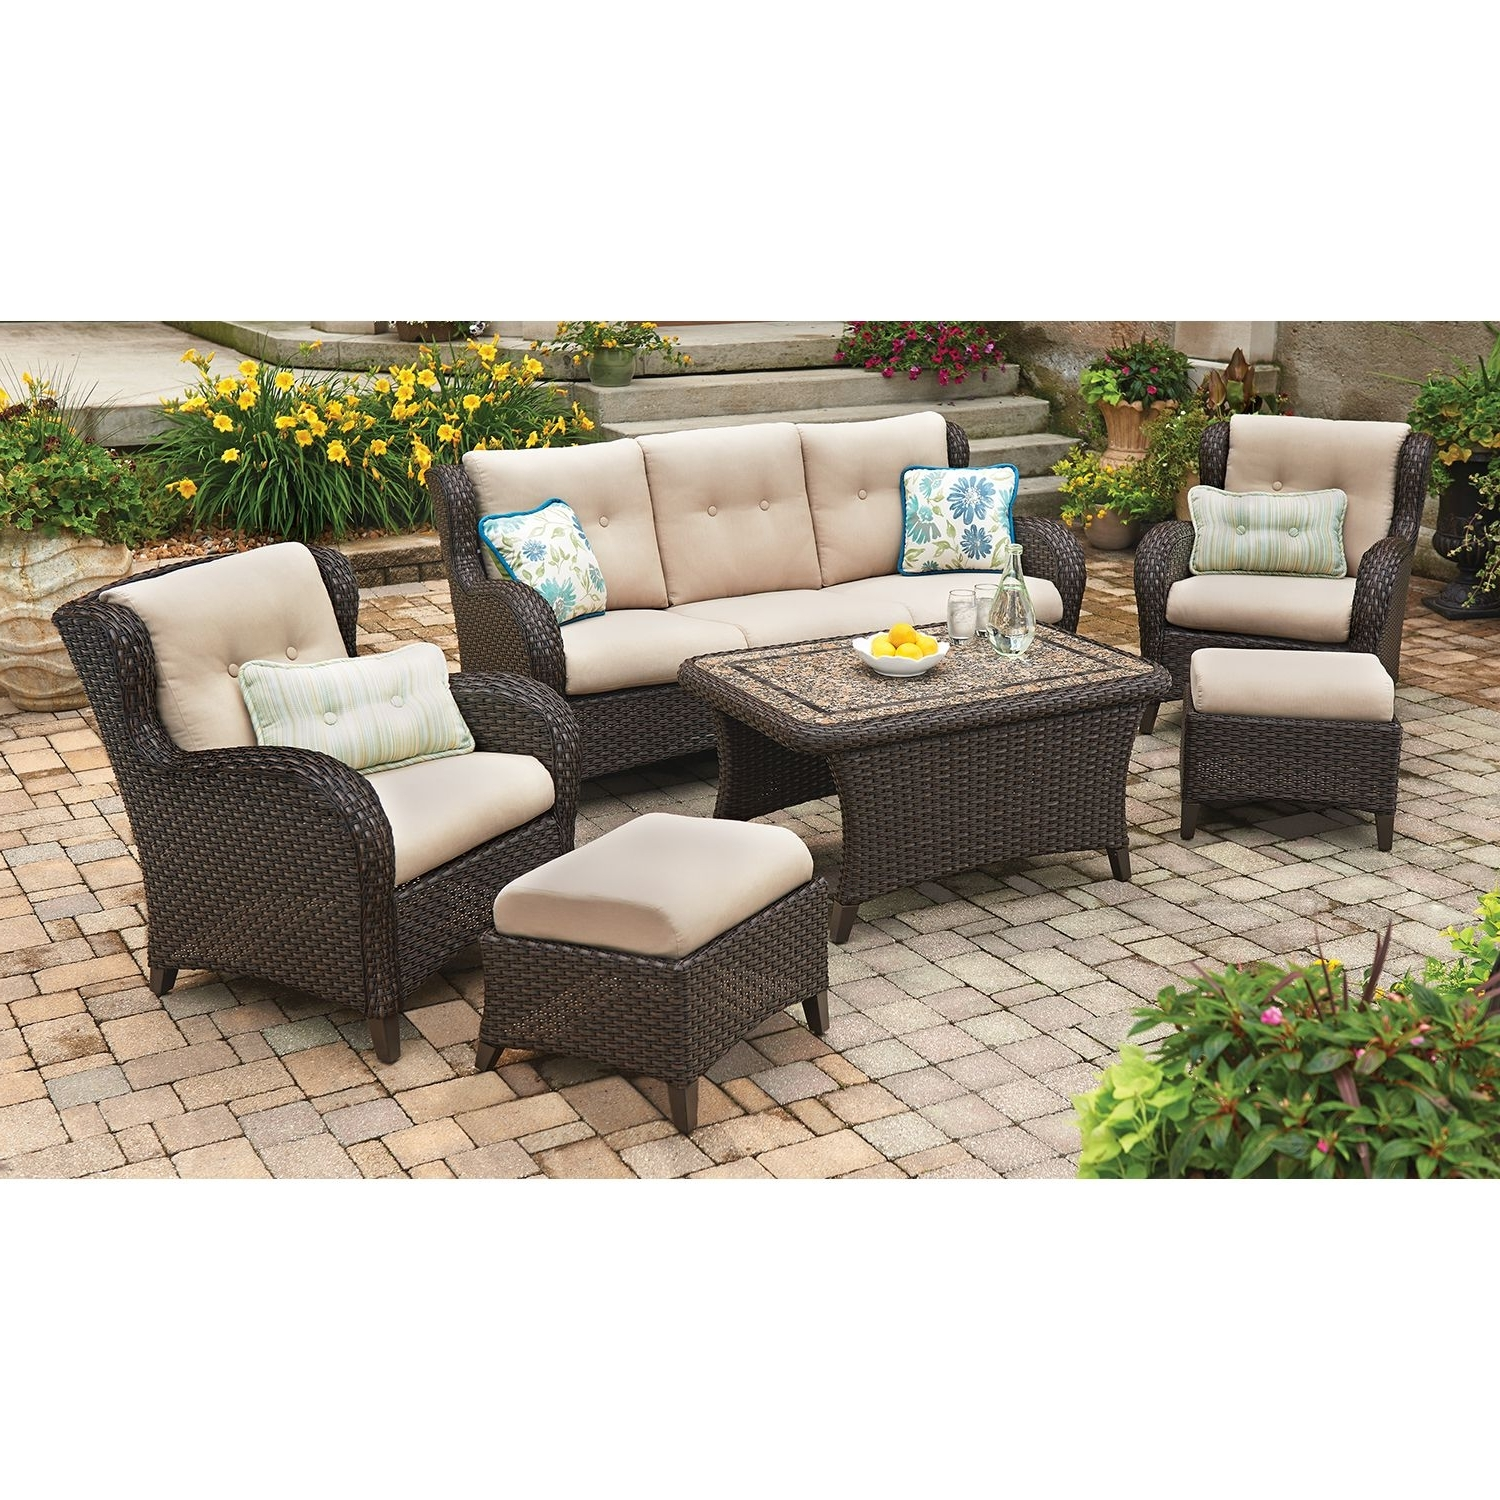 Popular Member's Mark Heritage 6 Piece Deep Seating Set With Premium In Sam's Club Outdoor Chaise Lounge Chairs (View 10 of 15)